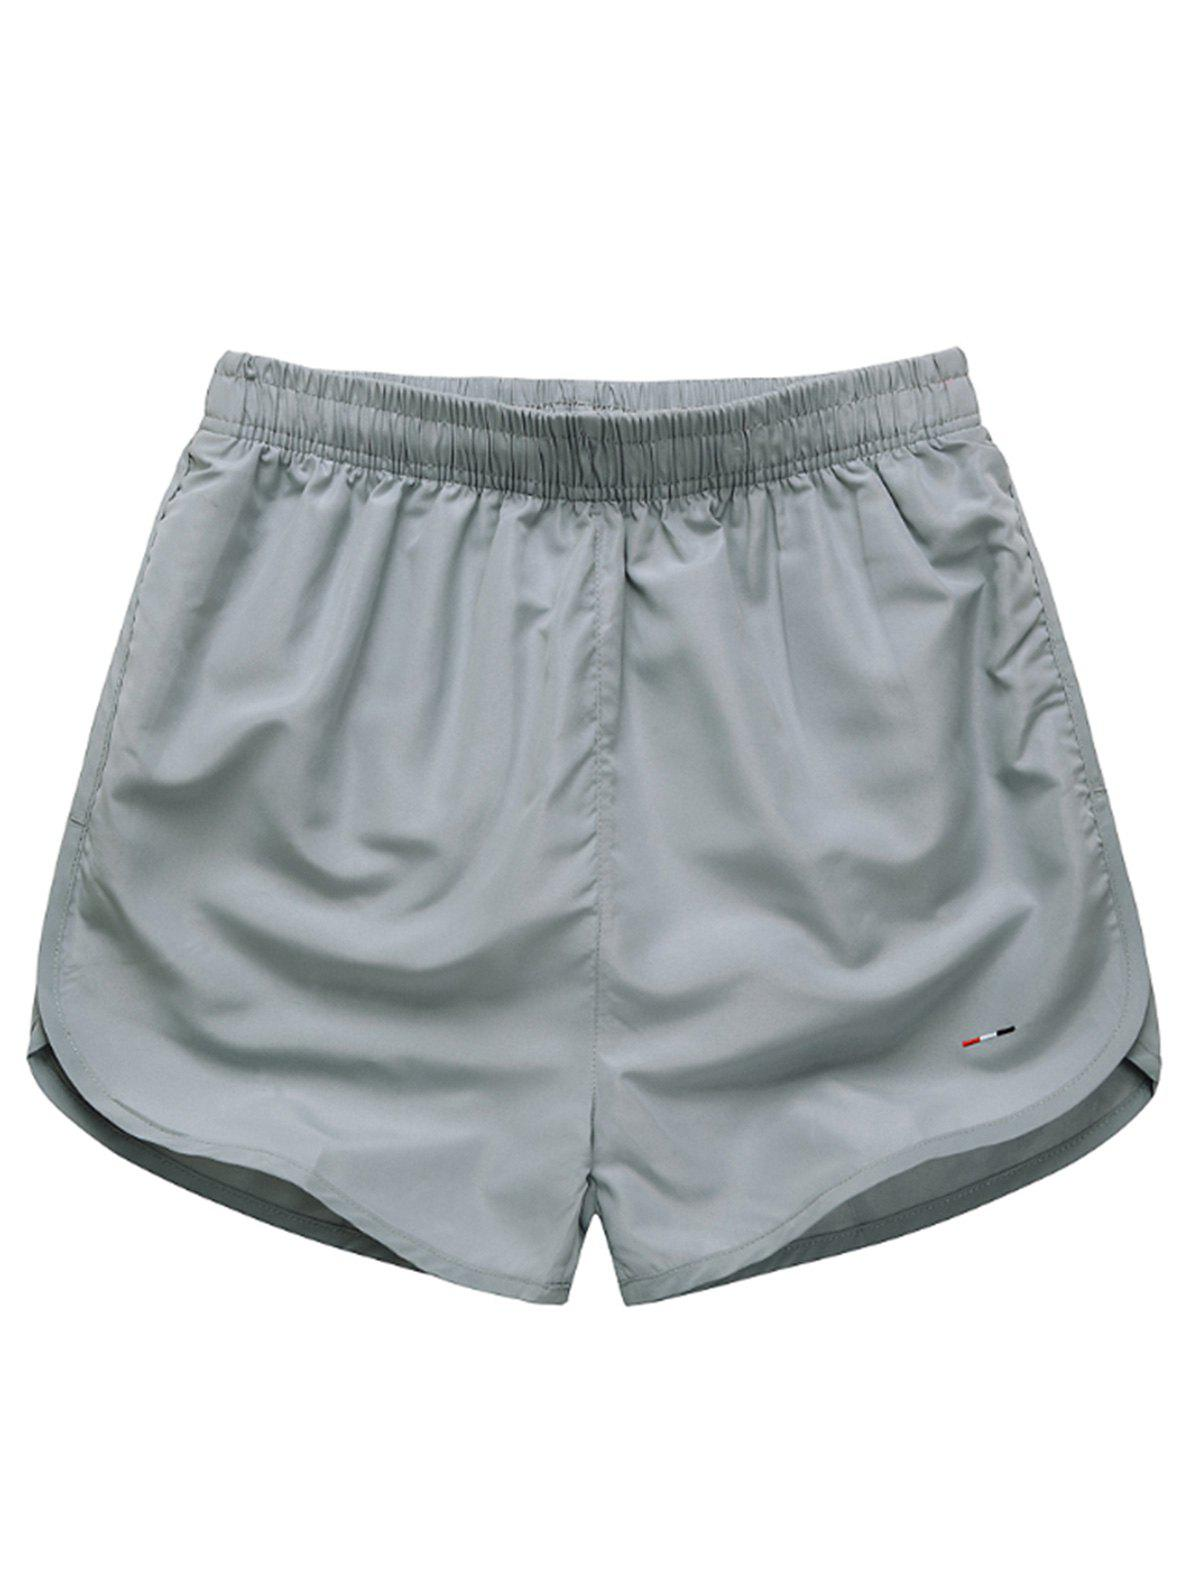 Mesh Lined Dolphin Hem Beach Shorts - GRAY XL